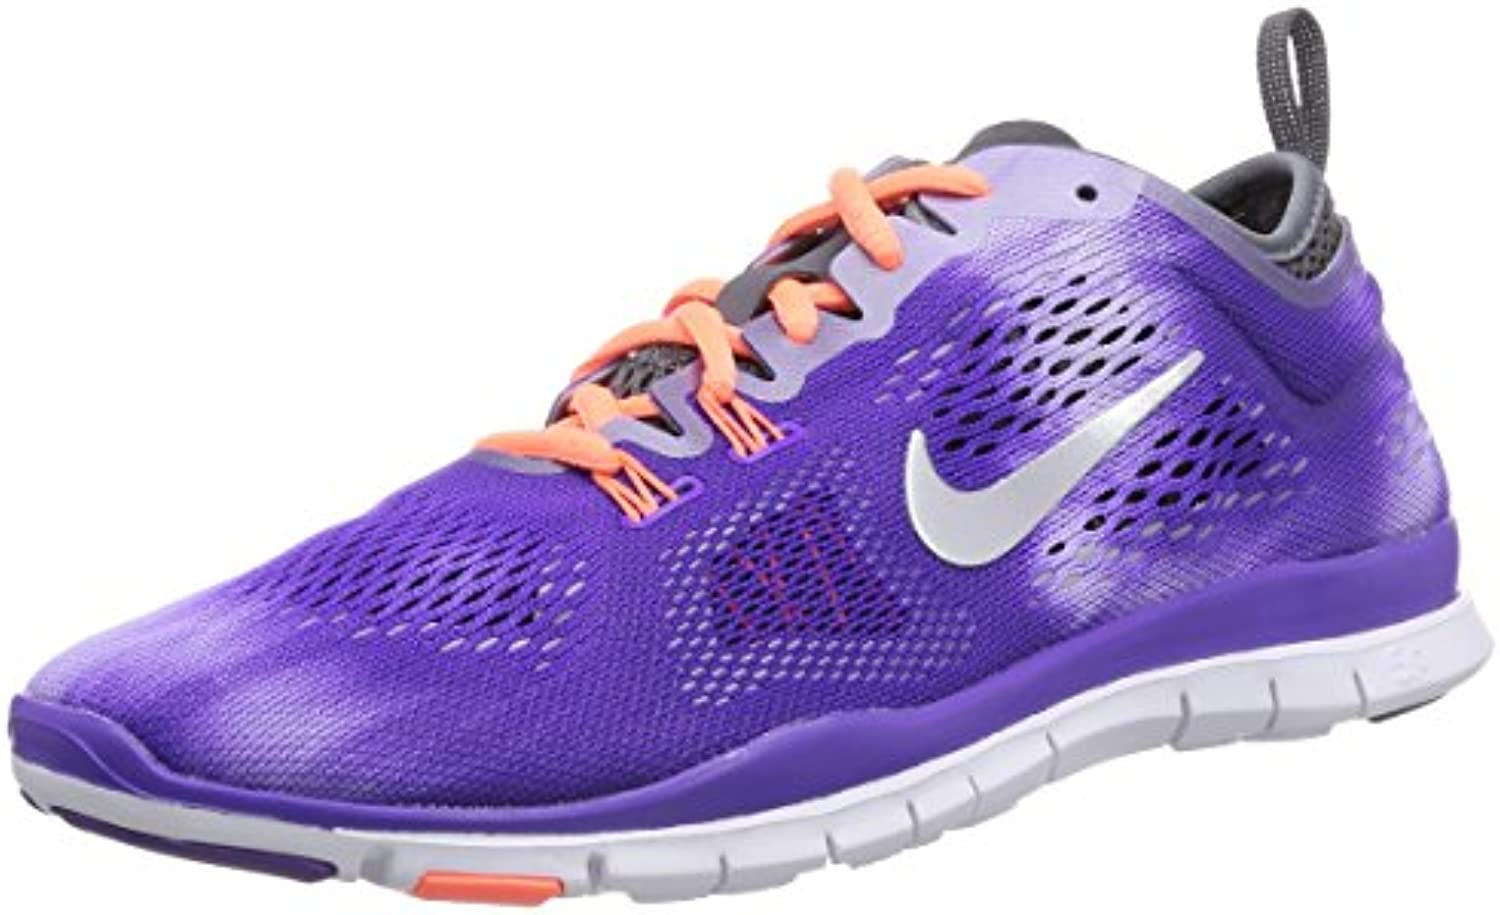 NIKE NIKE NIKE Free 5.0 Tr Fit 4 Wash, Women's Trainer Parent B00K21RT9M ce759f